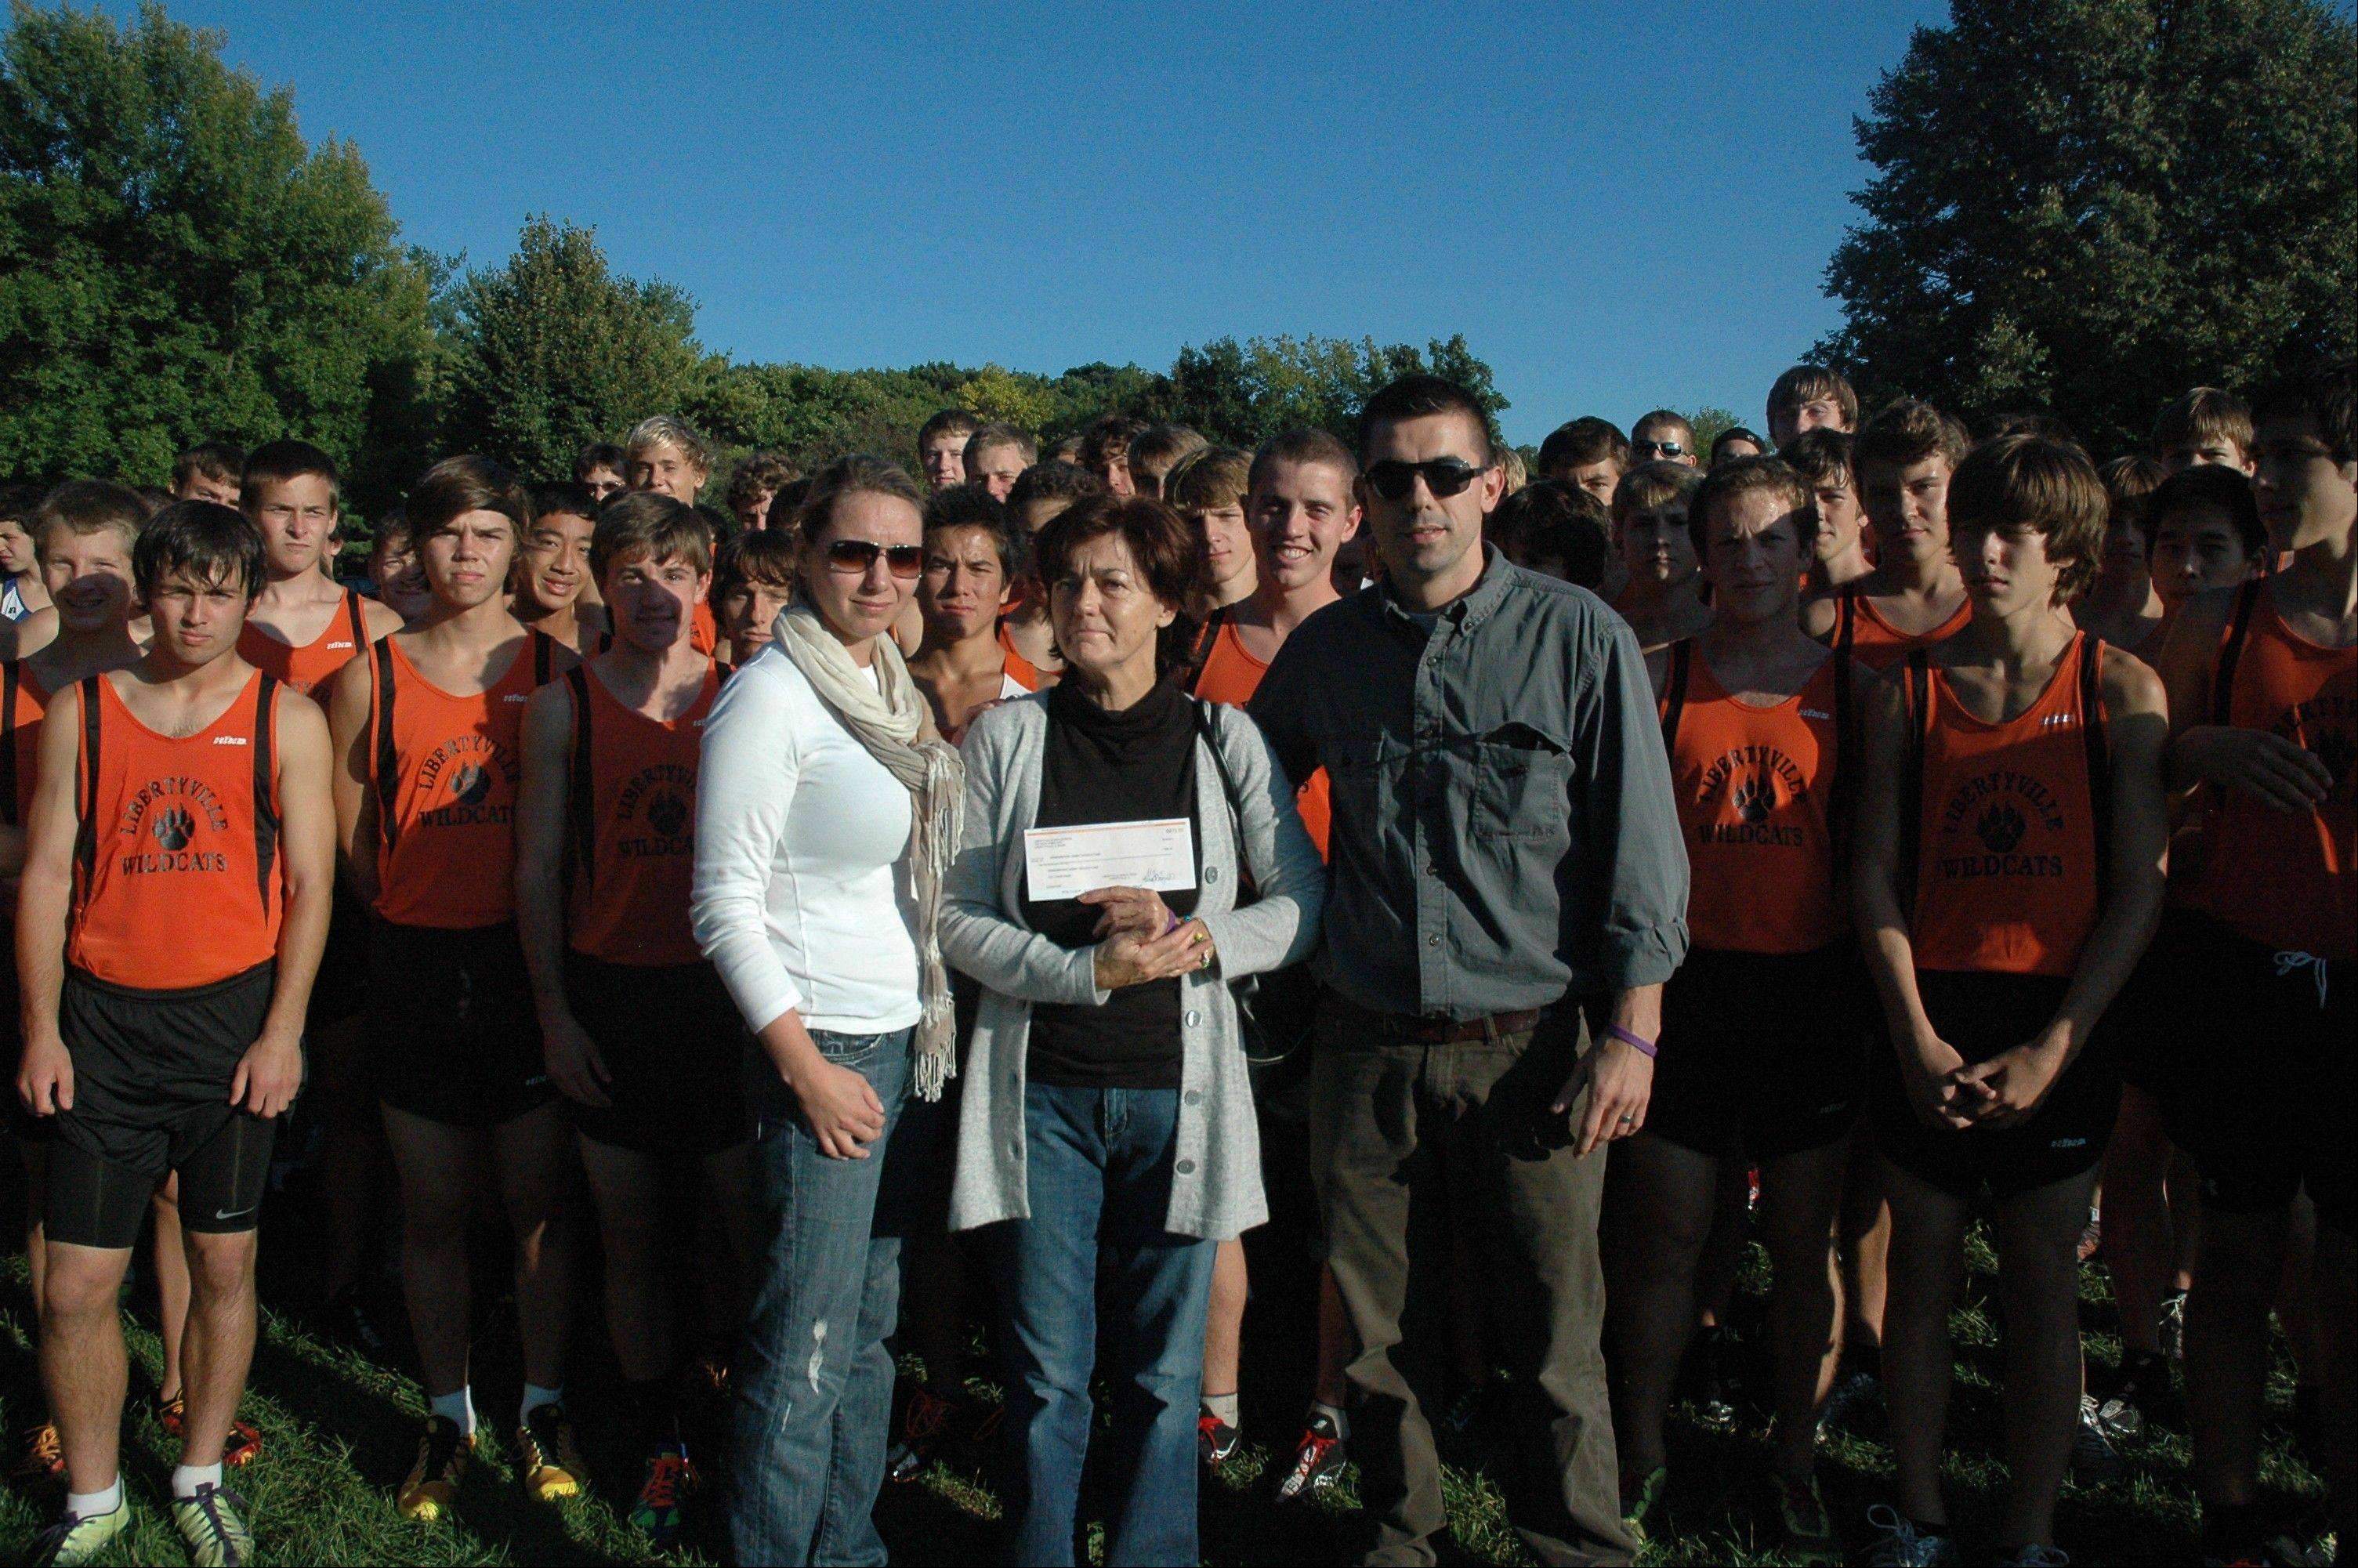 The Libertyville boys cross country team presents a check to the Drozdz family at the Lake Zurich vs. Libertyville cross country dual meet at Lakewood Forest Preserve on Sept. 19.